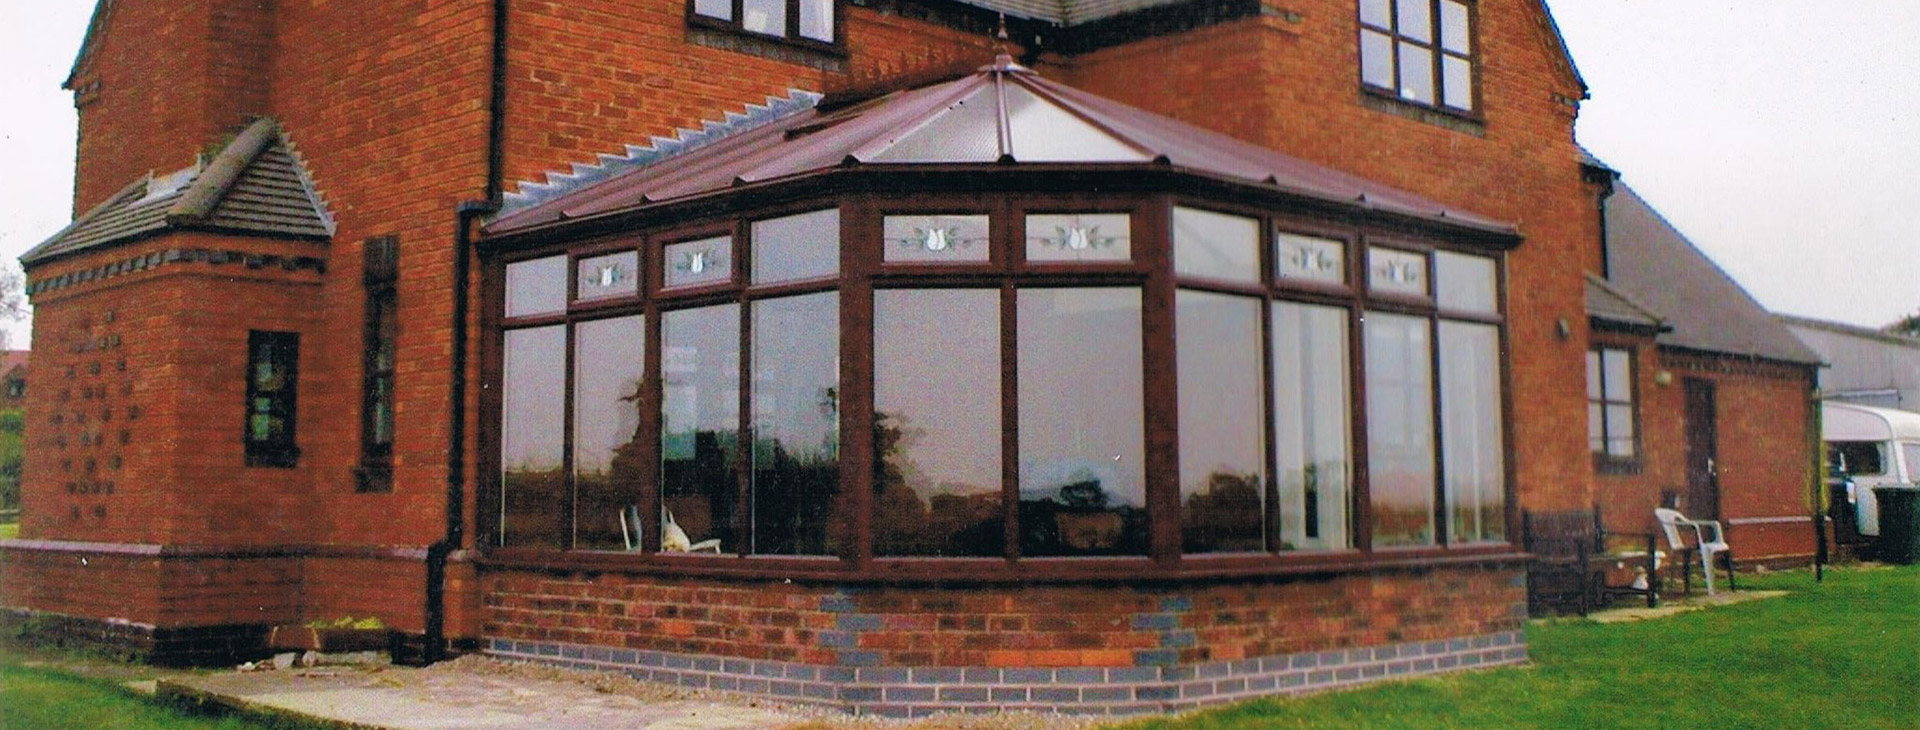 conservatories3-1920x730